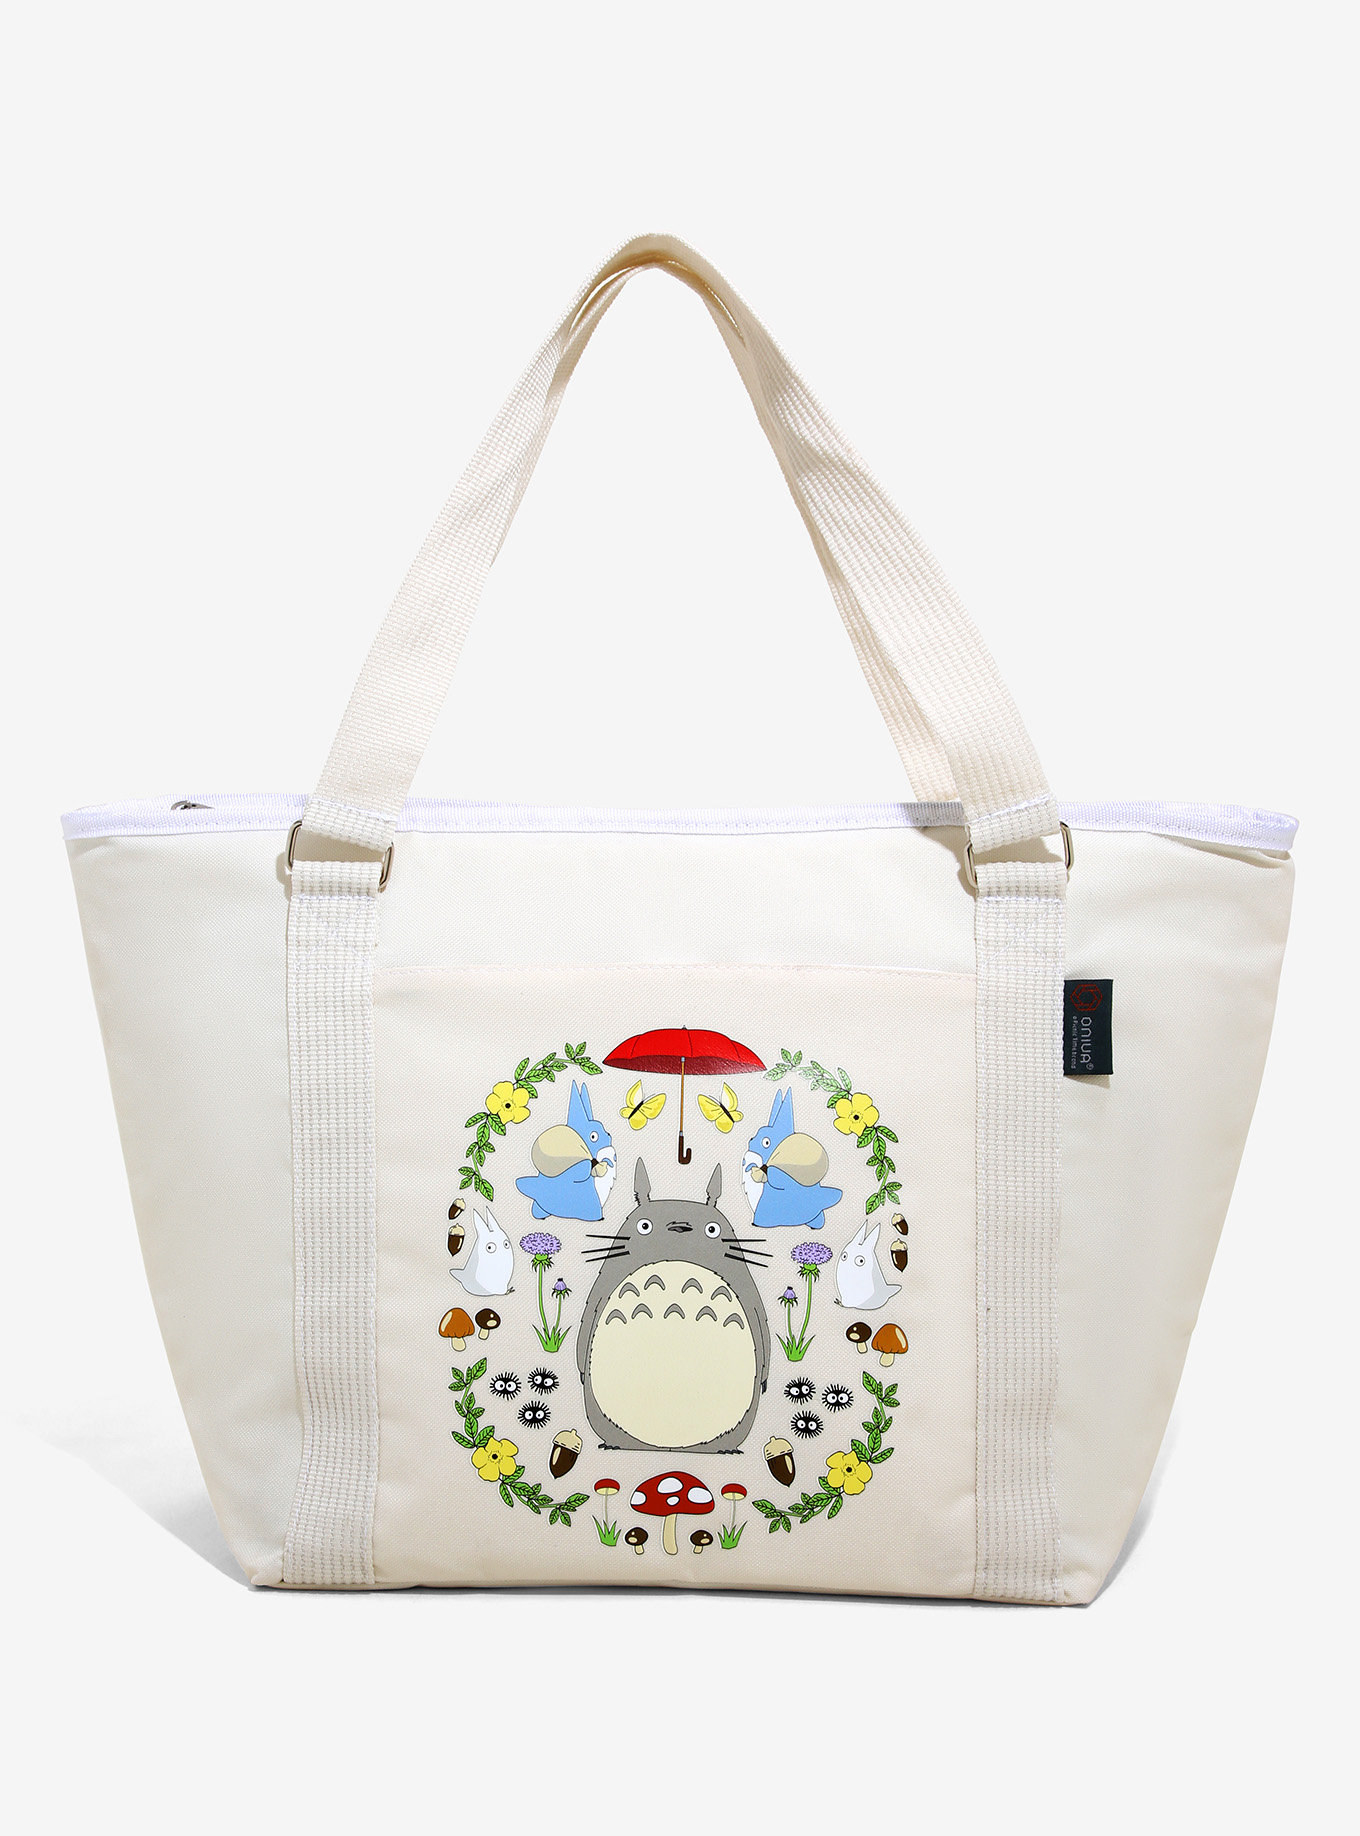 a cream-colored tote with Totoro on it